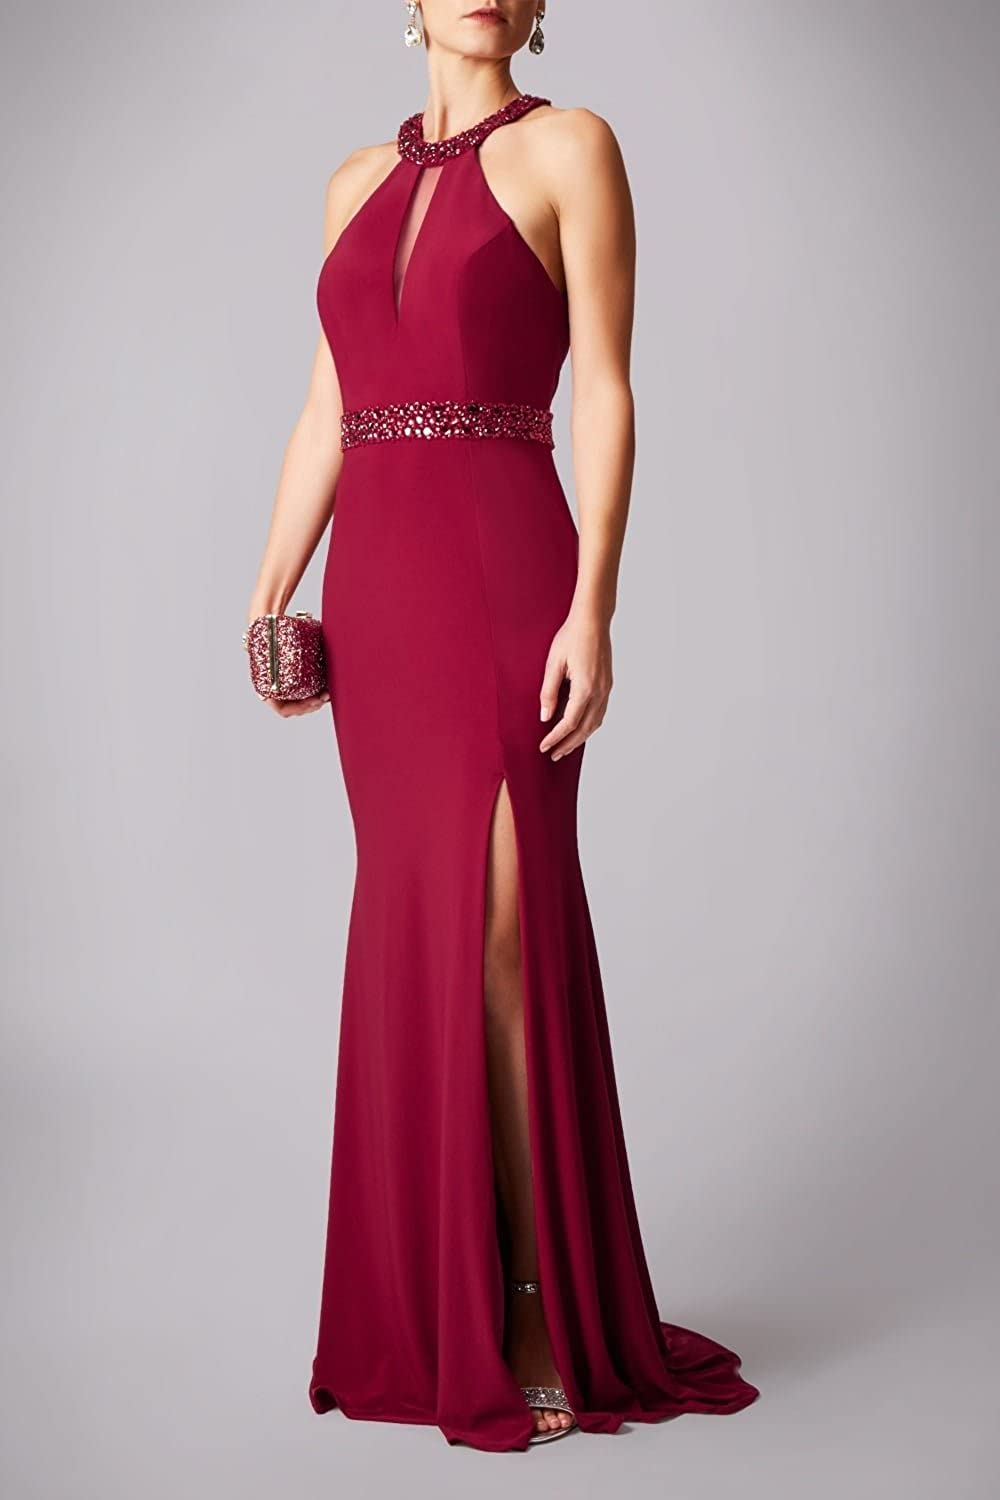 Mascara Red Drop Neck Gown with mesh Insert MC181203 Red